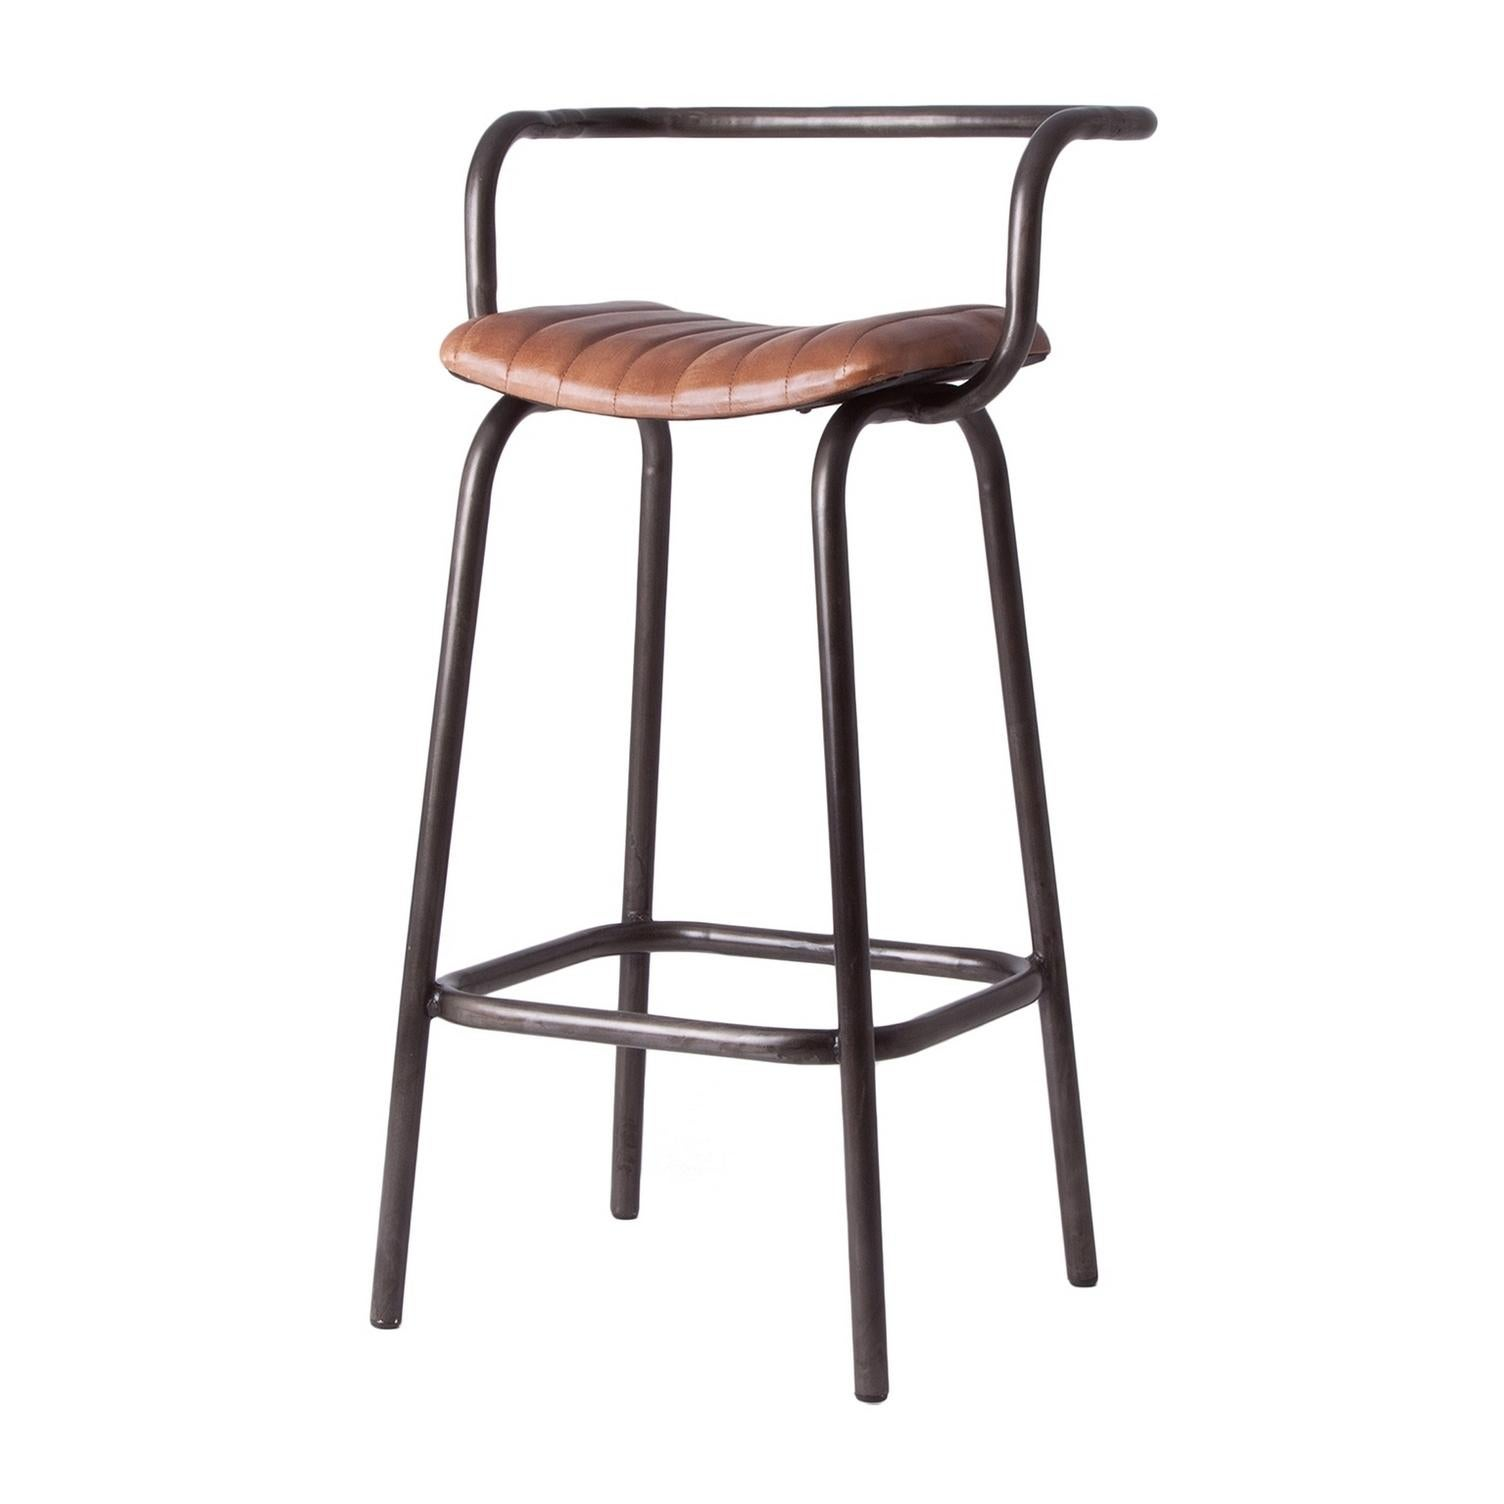 Industrial Style Tubular Metal And Leather Counter Bar Stool For Sale At 1stdibs